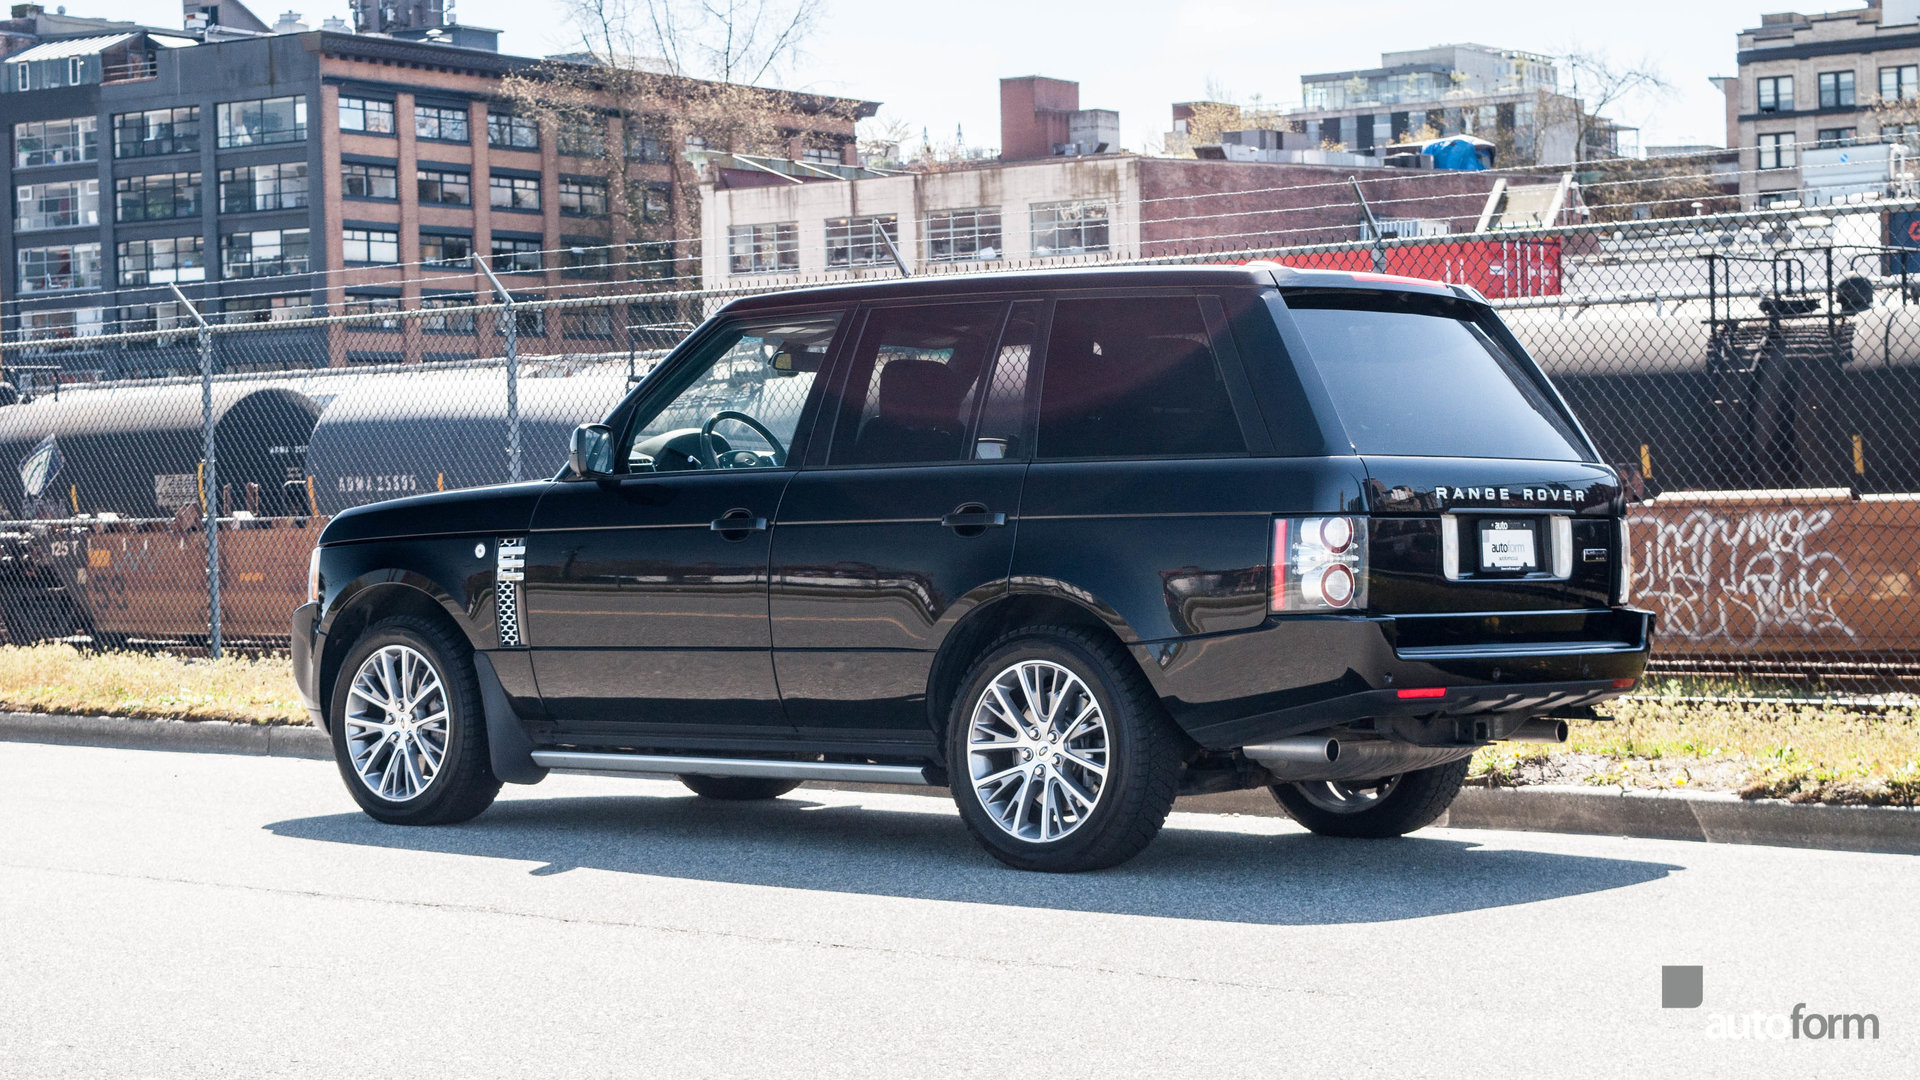 2011 land rover range rover autobiography black for sale for Land rover tarbes garage moderne